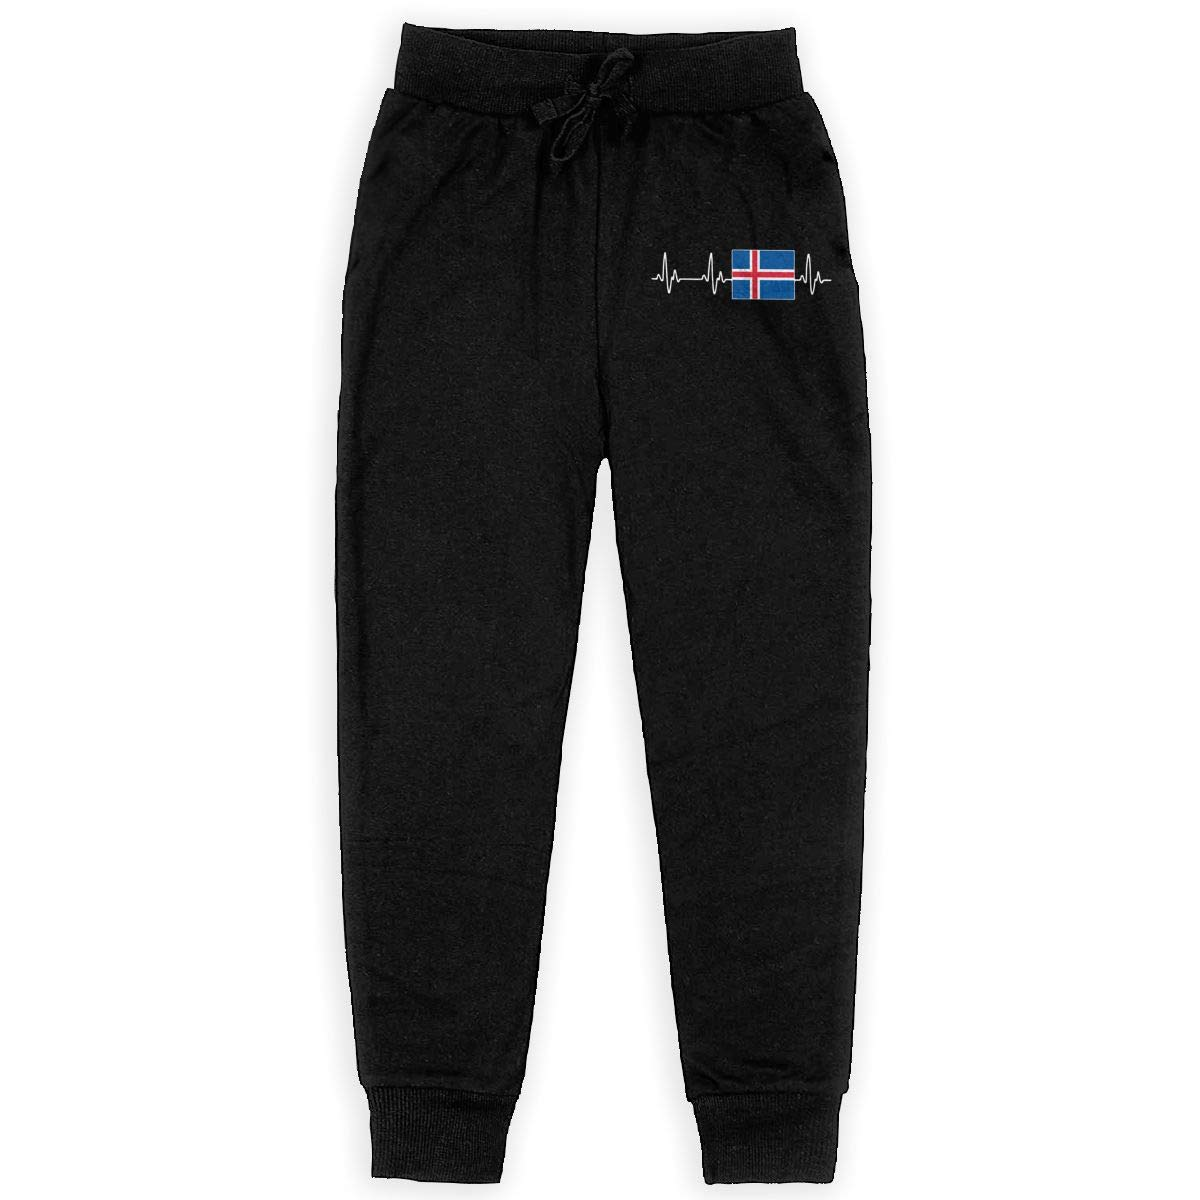 WYZVK22 Iceland Heartbeat-1 Soft//Cozy Sweatpants Youth Active Pants Teenager Girls